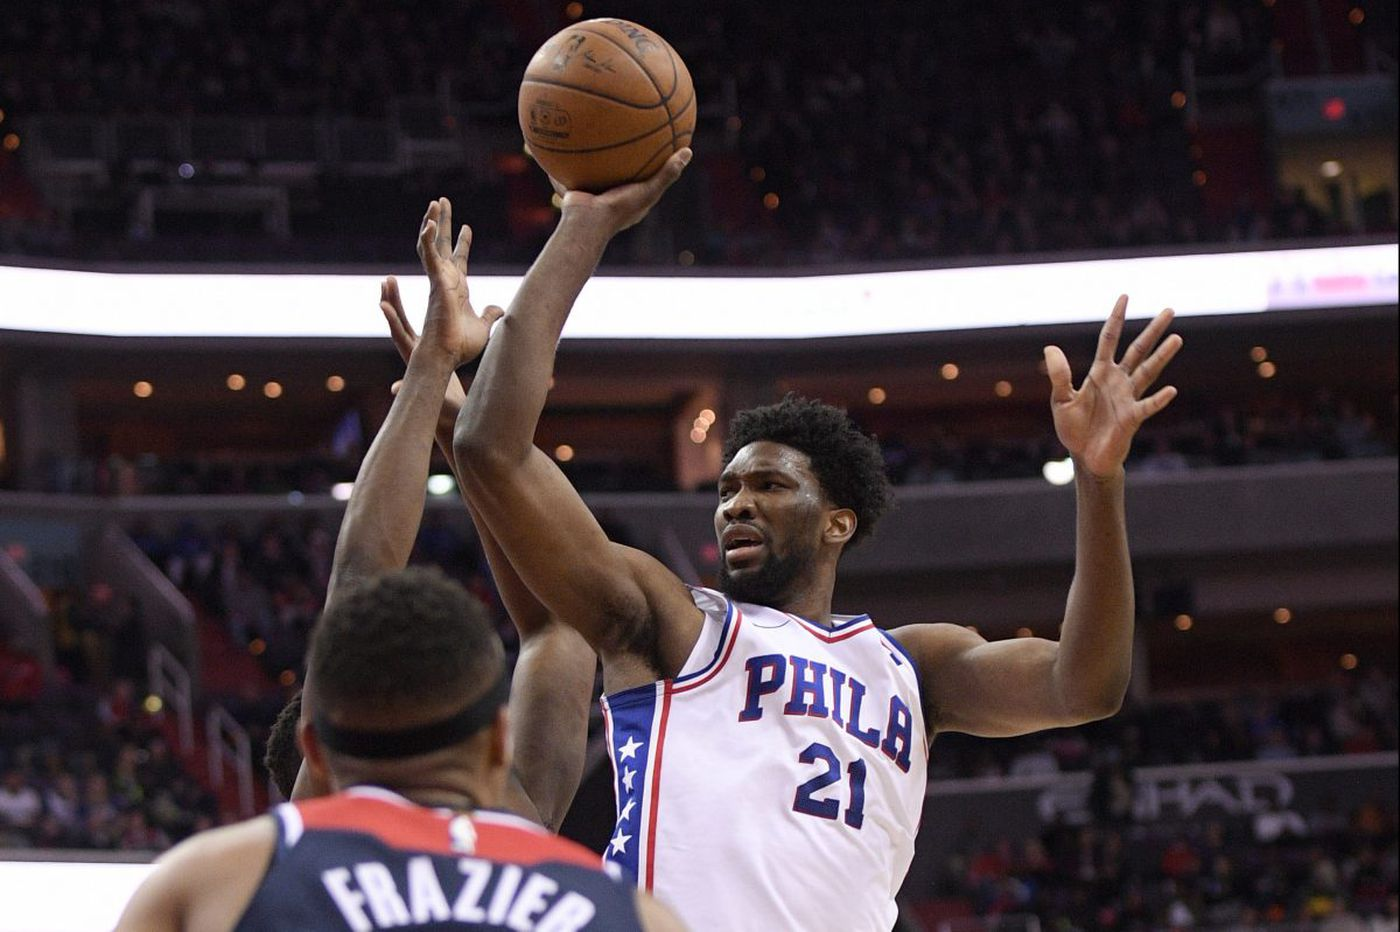 Sixers-Wizards observations and 'best' and 'worst': Joel Embiid's 31st double-double, poor shooting, horrid team play